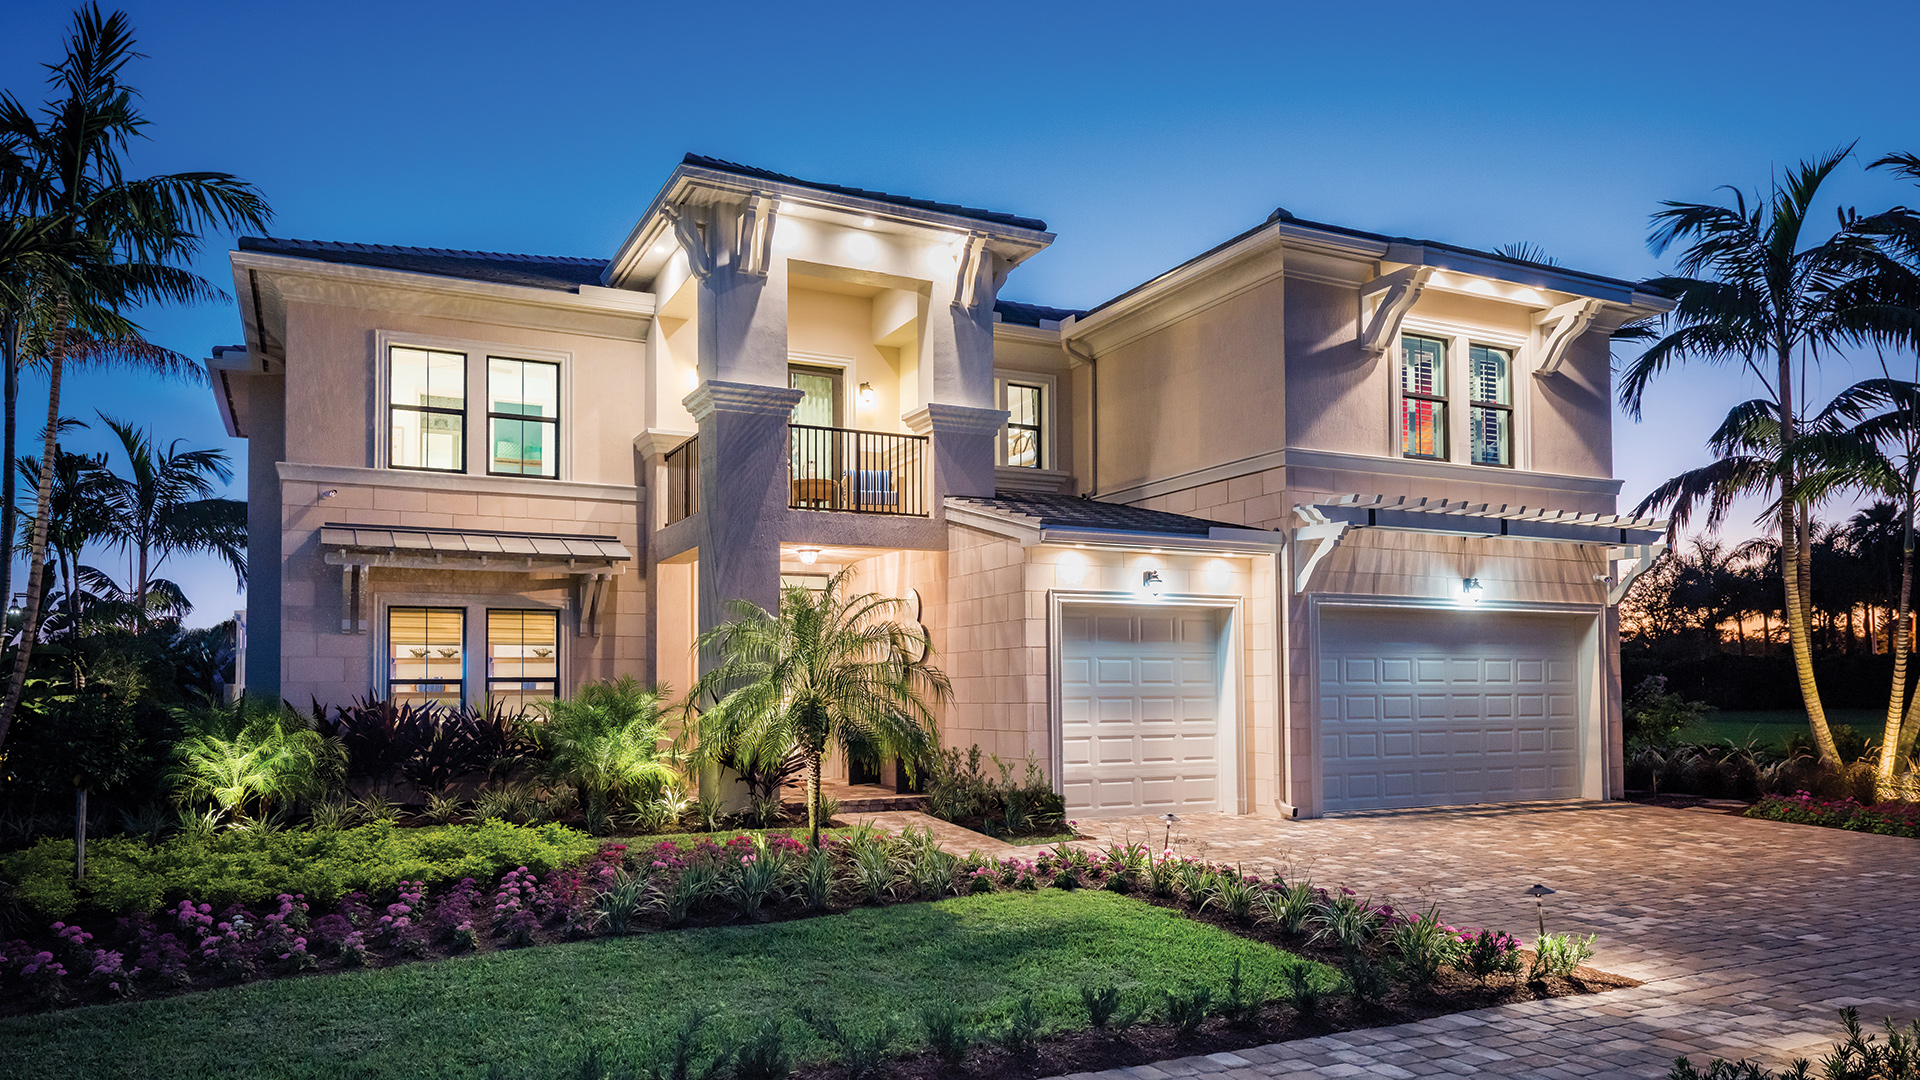 Boca raton fl new homes for sale royal palm polo for Florida house plans for sale